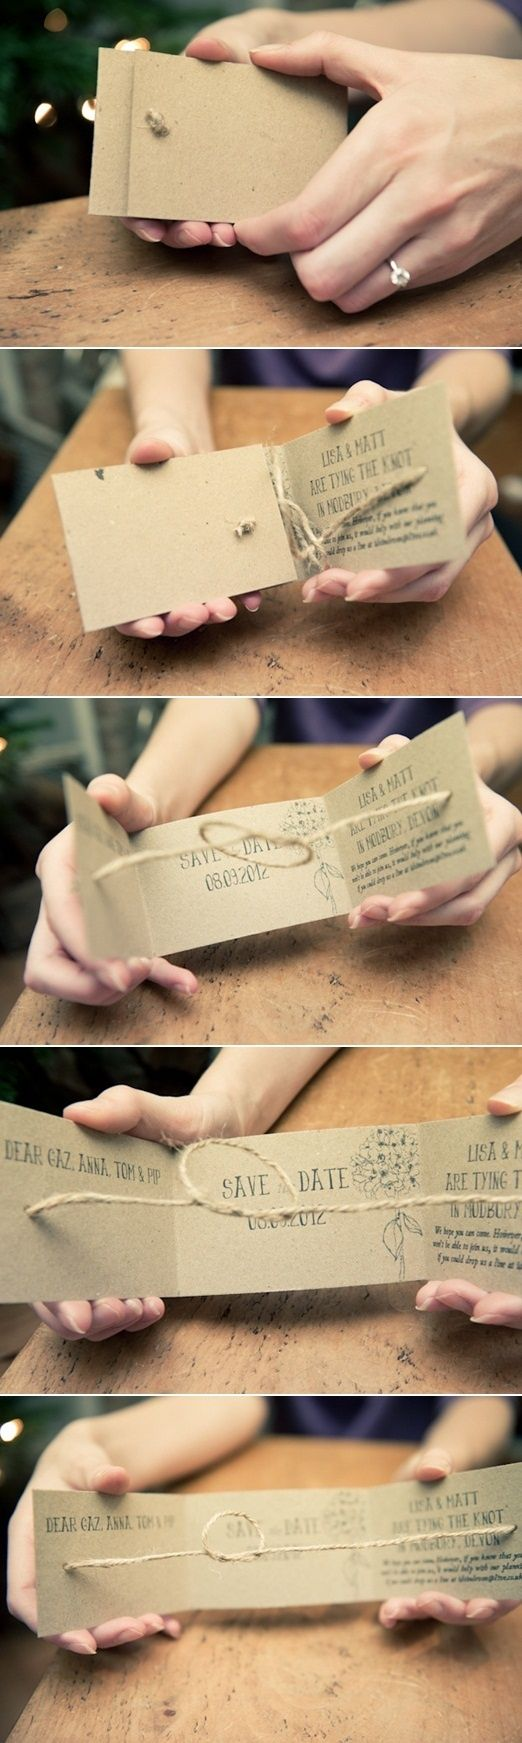 Tying the knot save the date #wedding #weddingfavors Repinned by www.BlueRainbowDesign.com